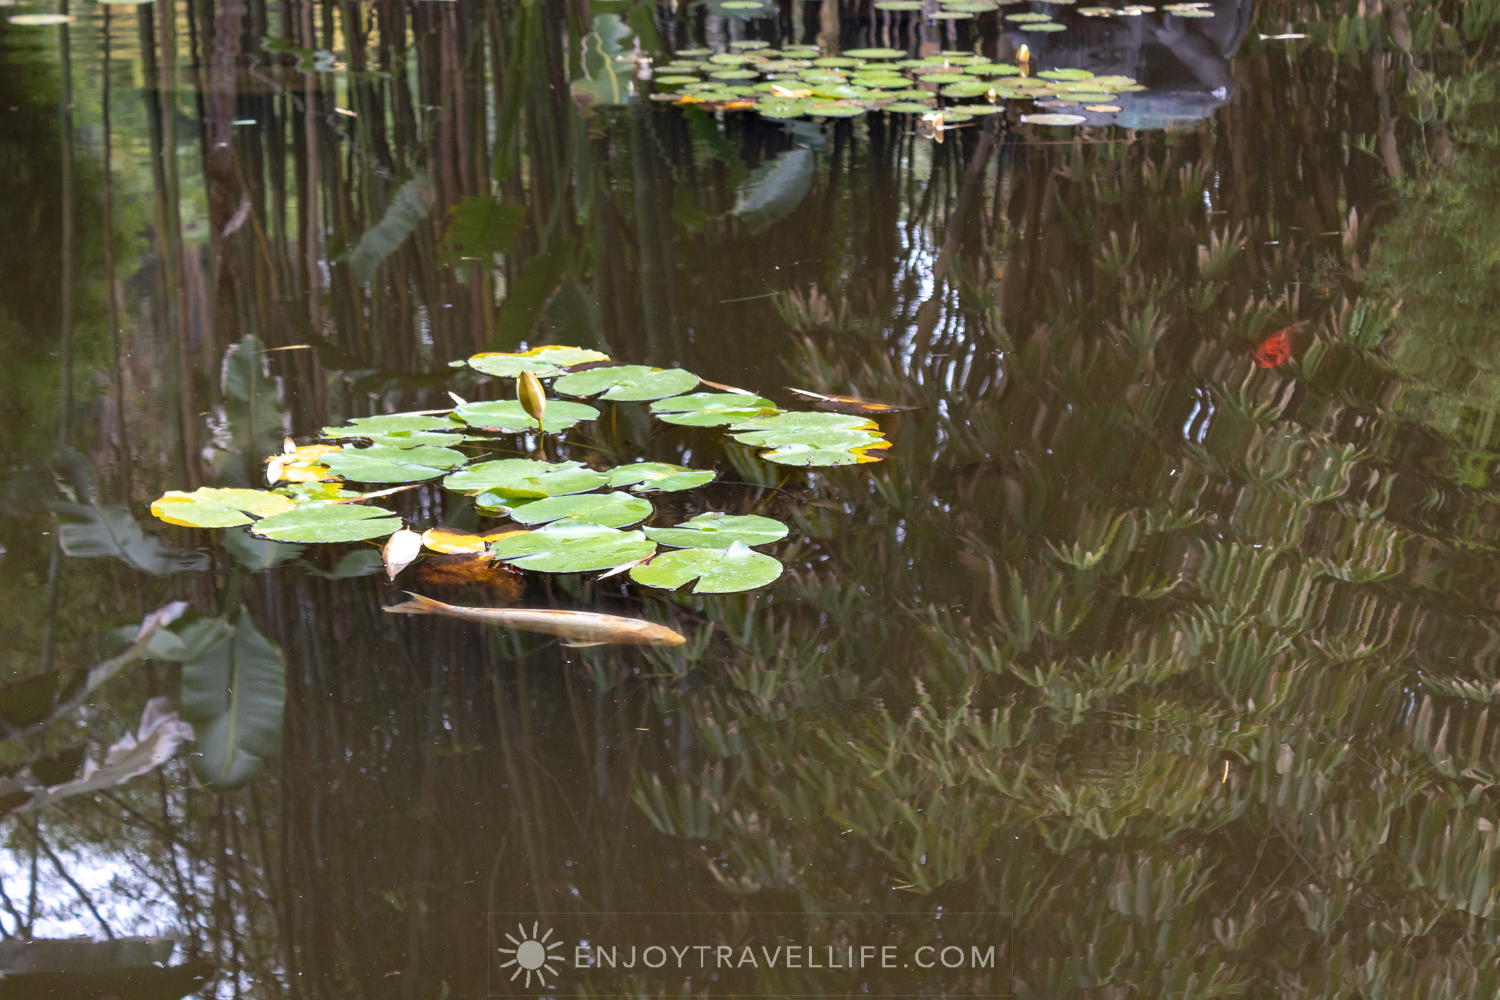 Koi under Lily Pads - The Huntington Botanical Gardens